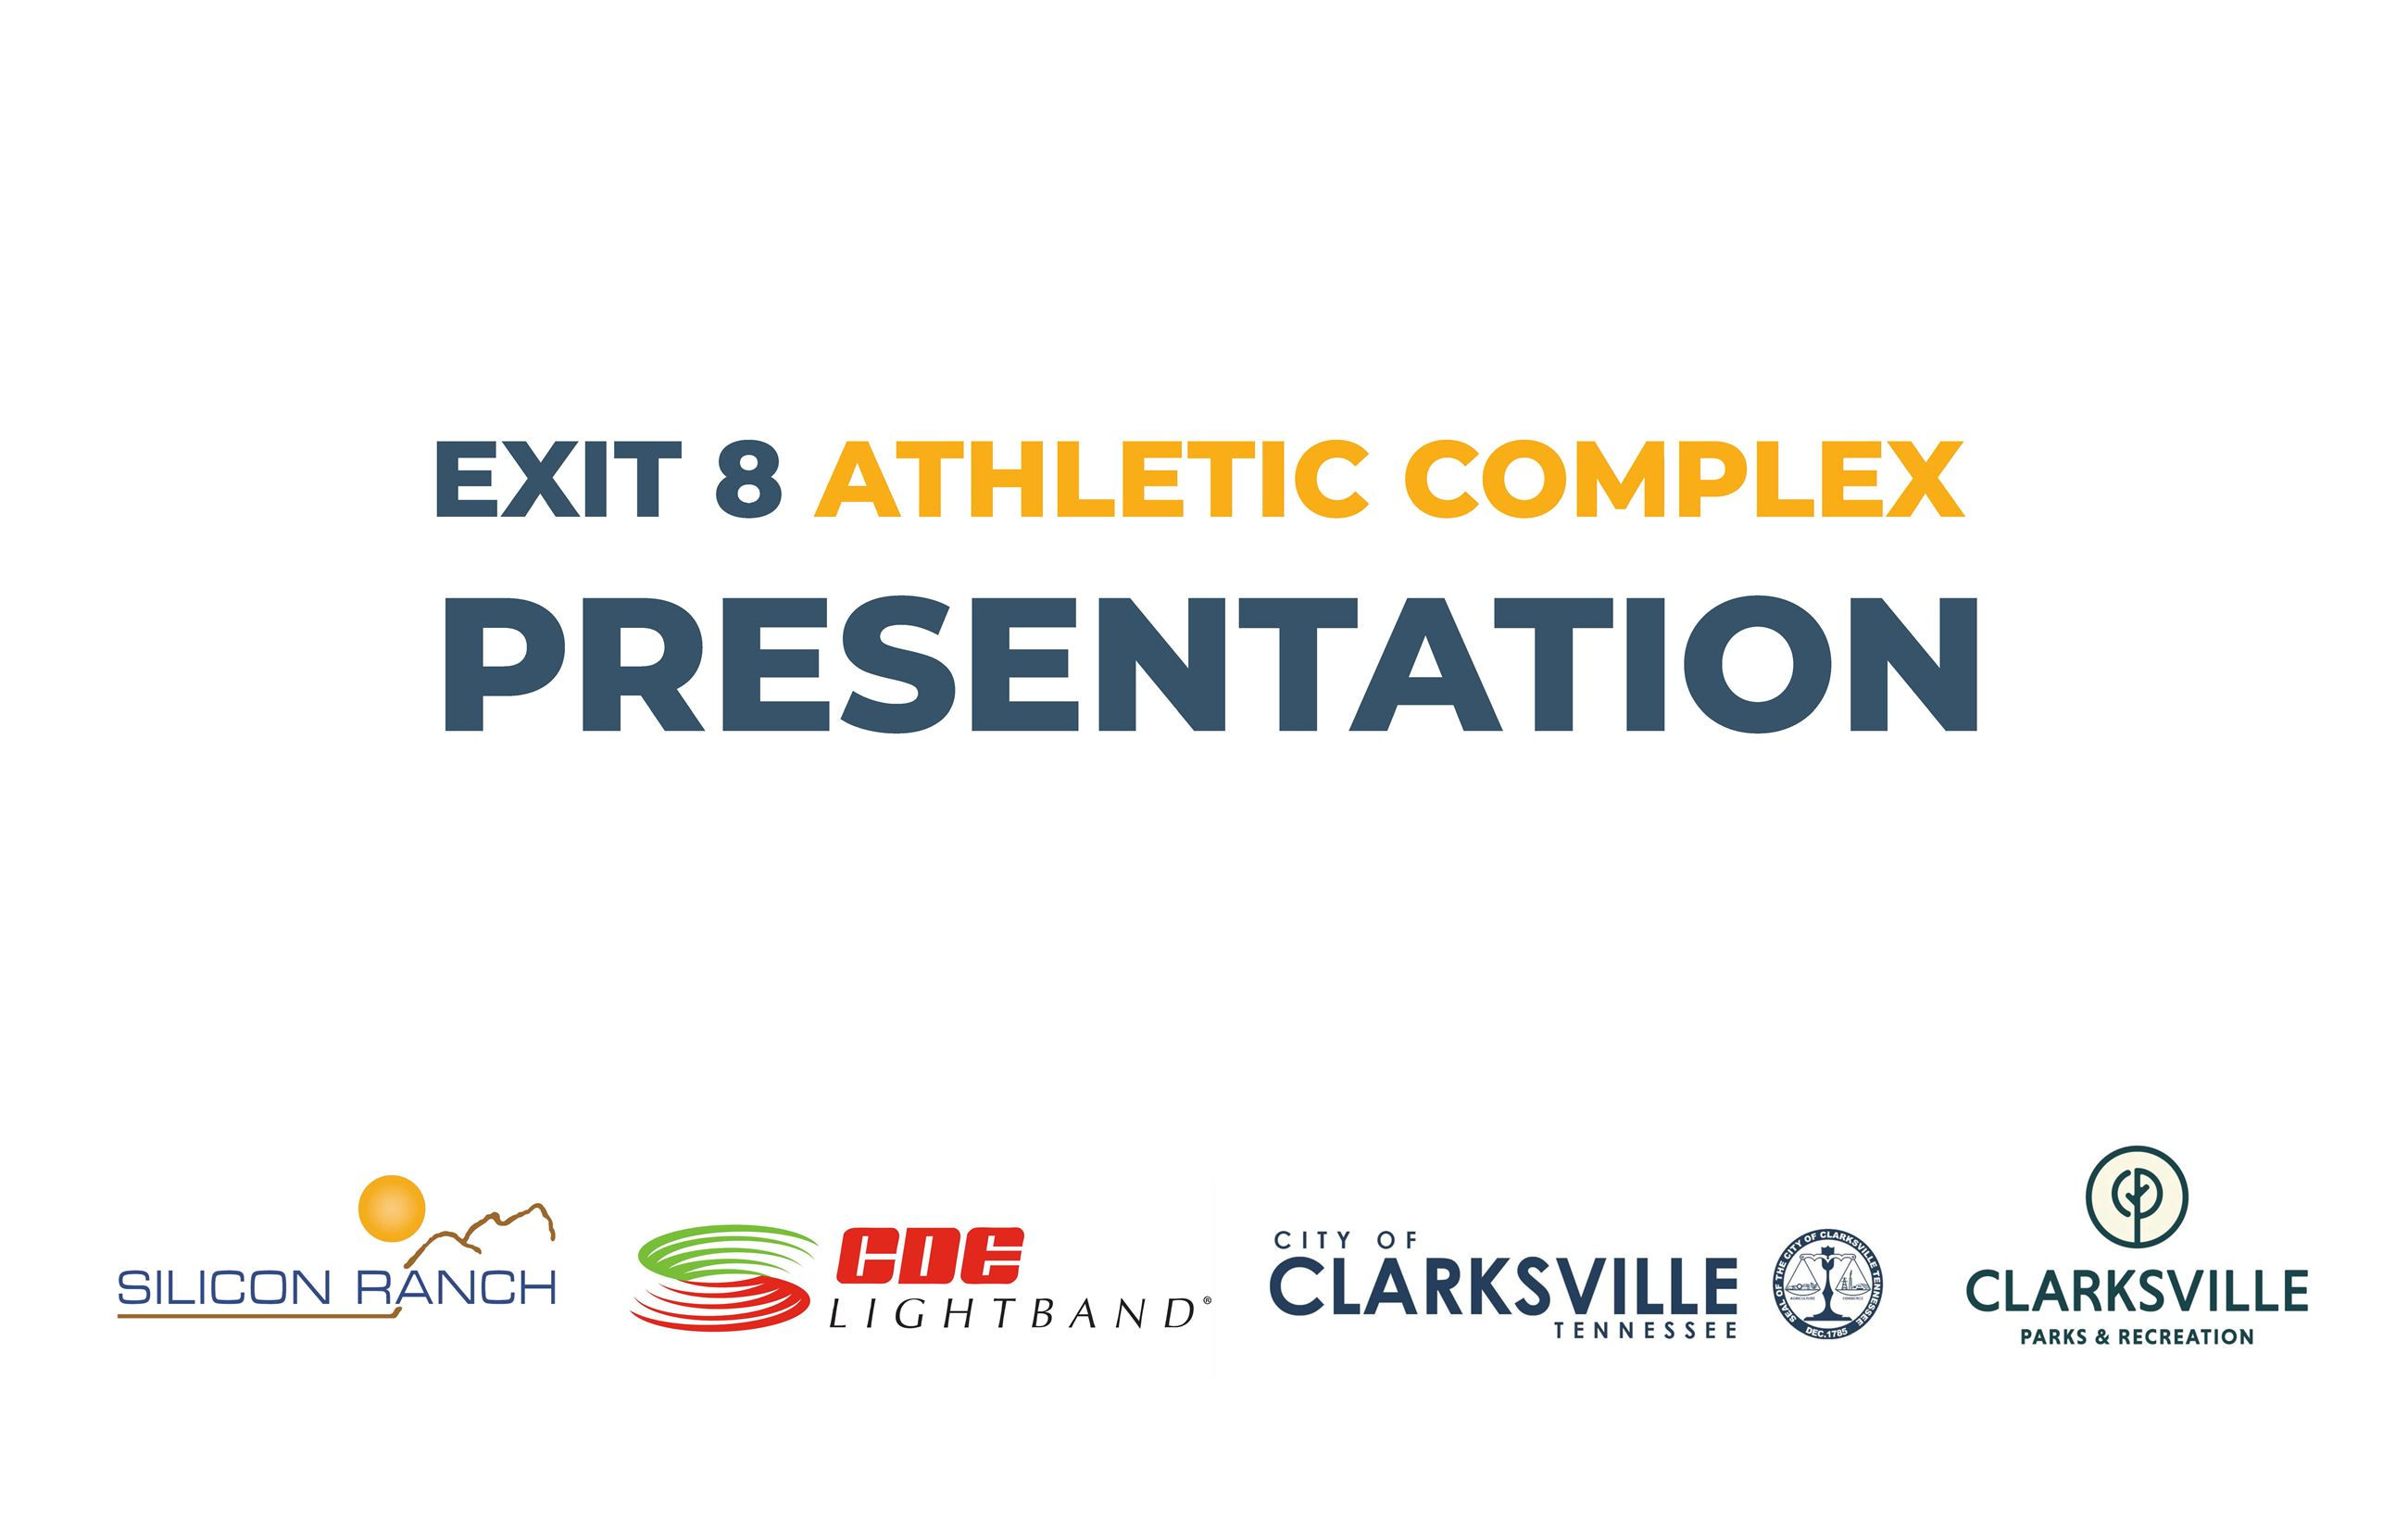 Exit 8 Athletic Complex Presentation